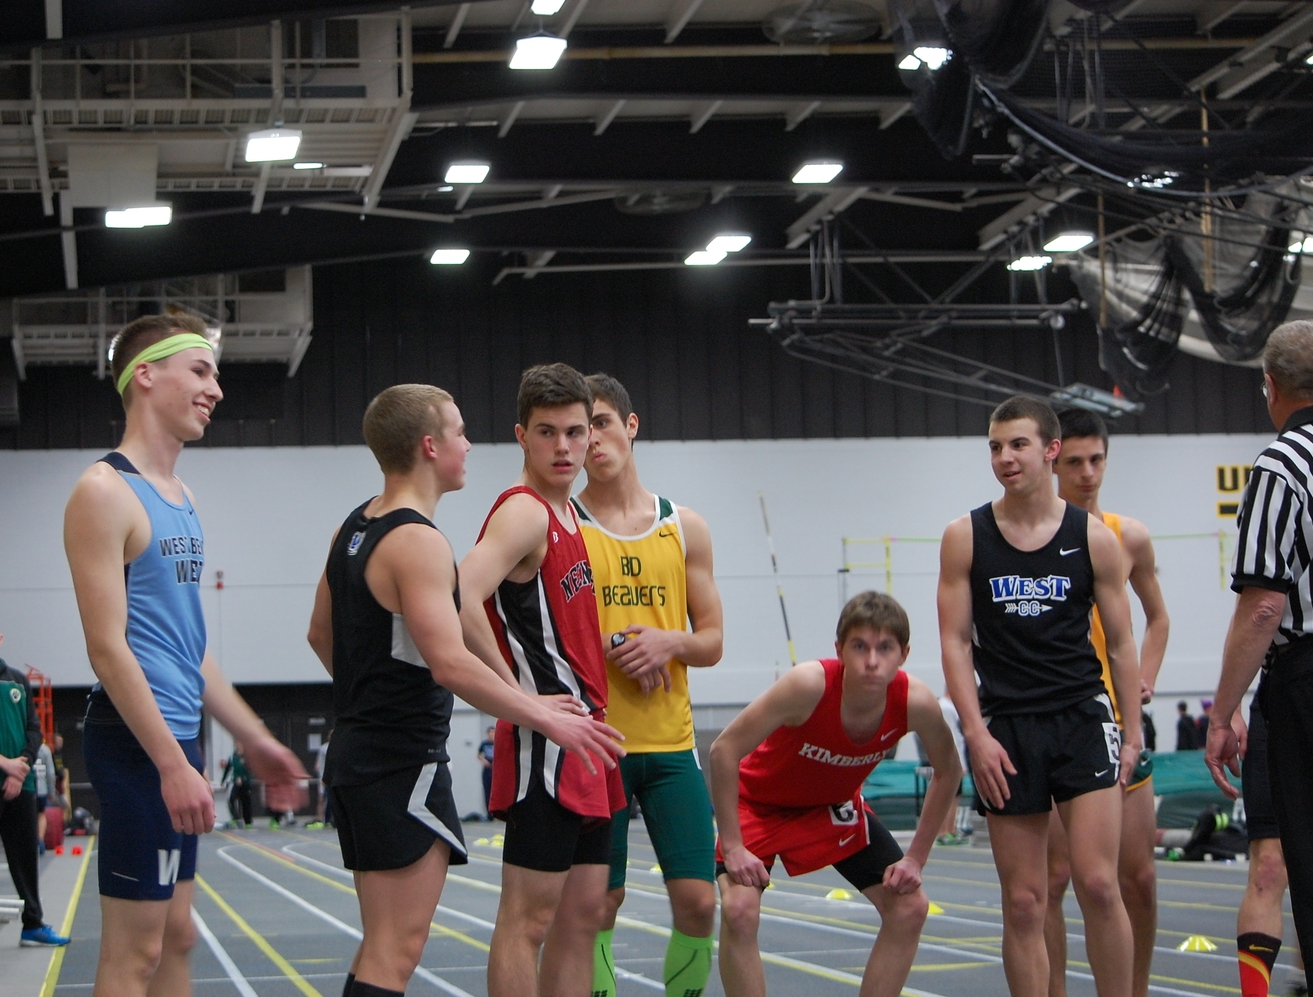 Seniors Rourke Lenz (left) and Jake Rost (right) talk out strategy before their mile race.